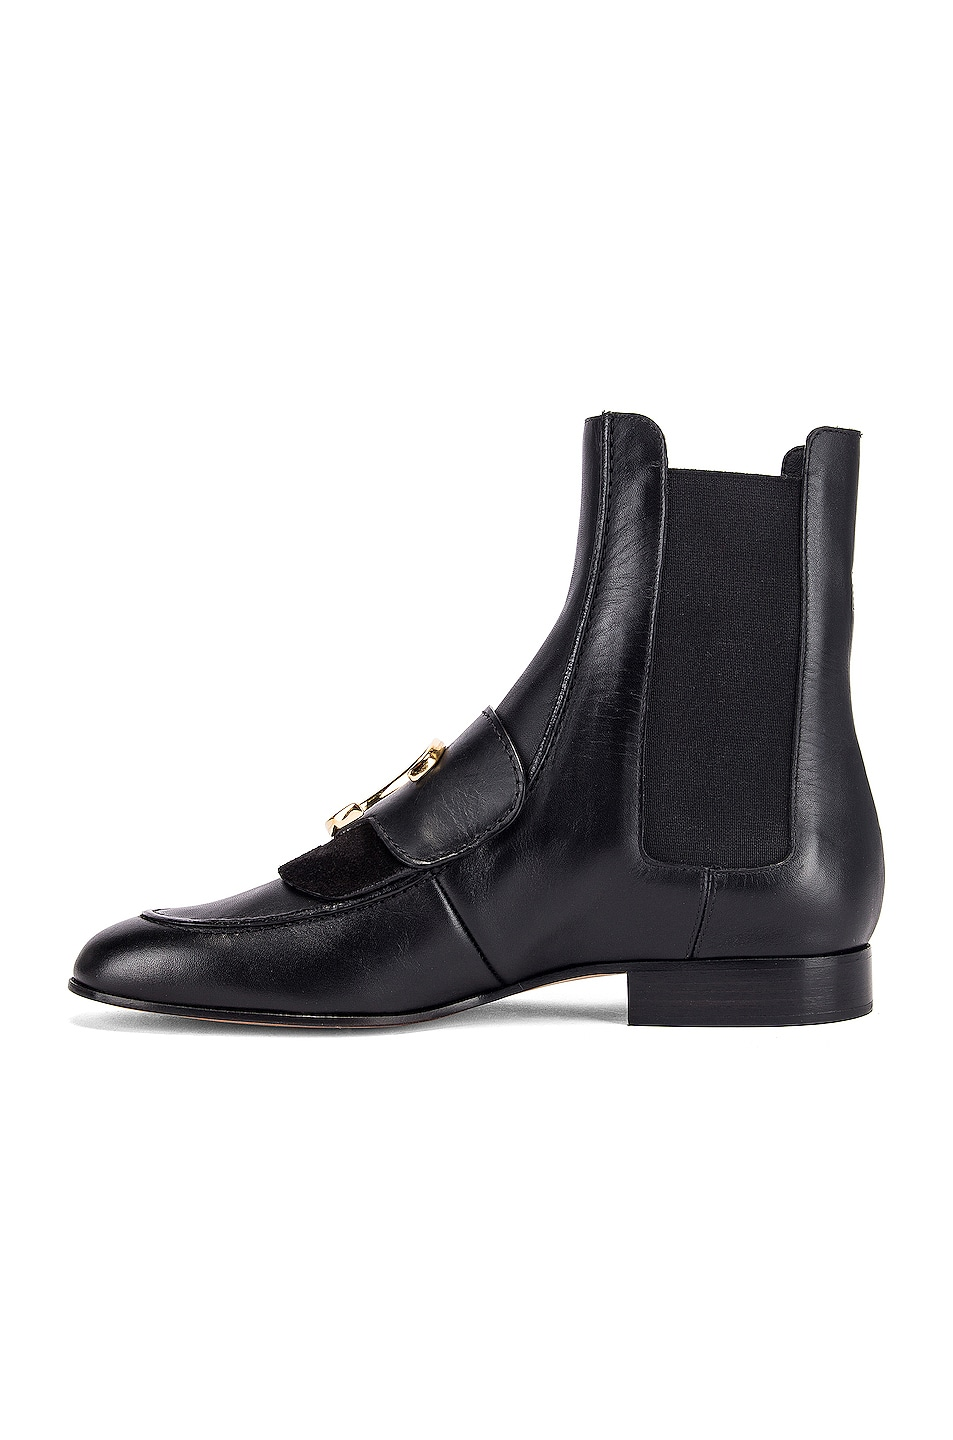 Image 5 of Chloe C Ankle Boots in Black